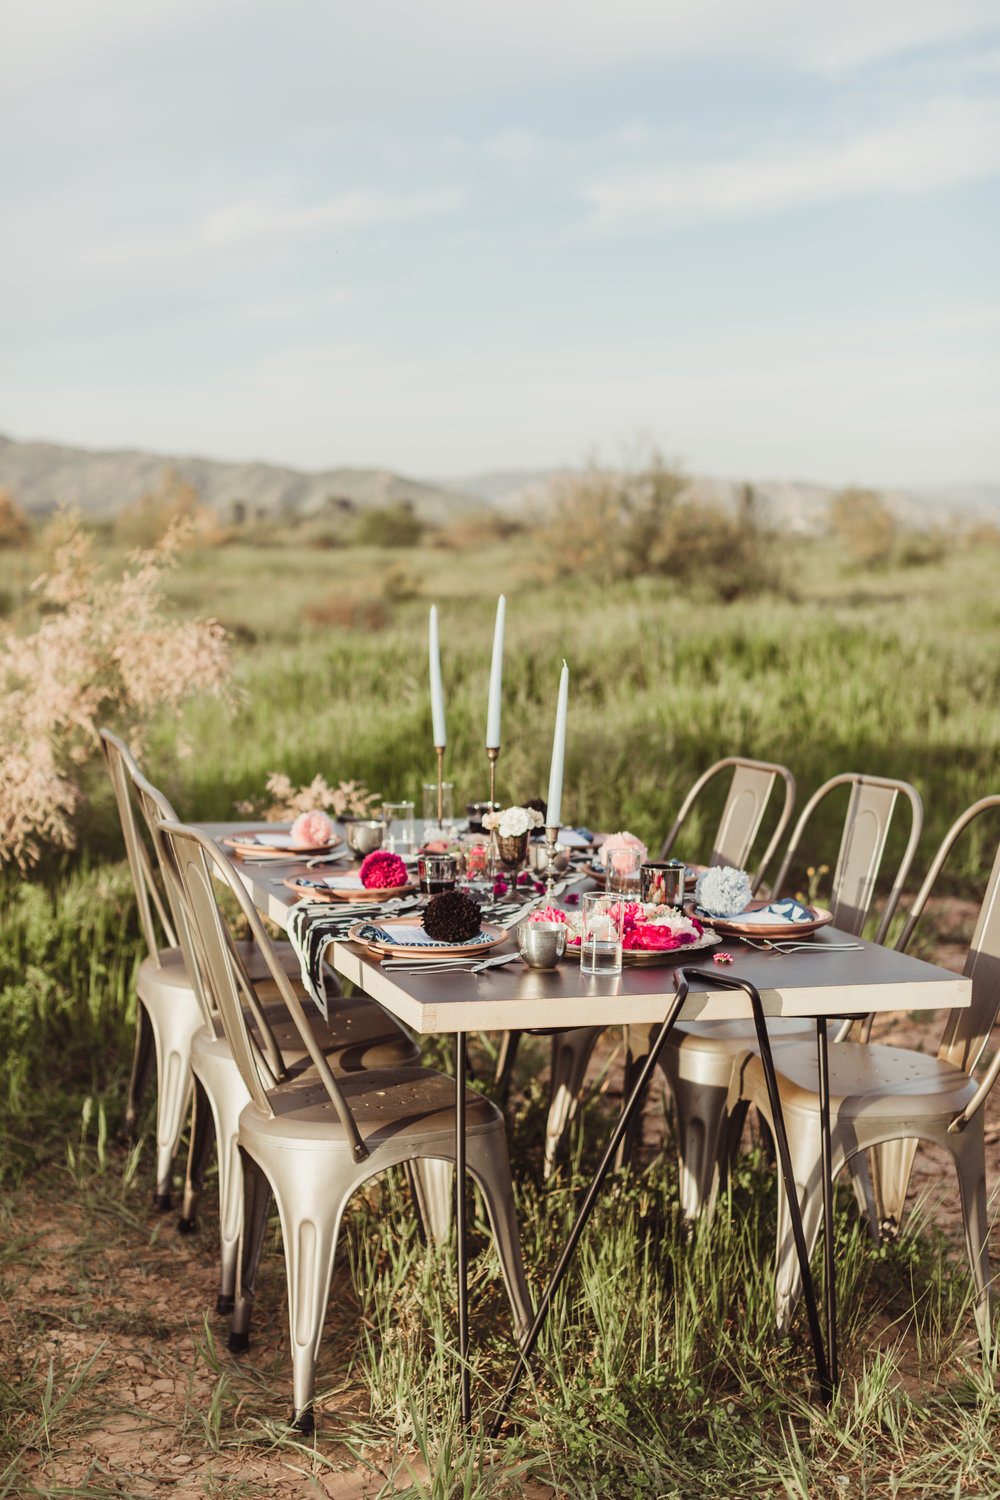 Jamie_English_Photography_Styled_Elopement_Valle_de_Guadalupe_Baja_California_Mexico_Luna_Wild_March_2017-19.jpg